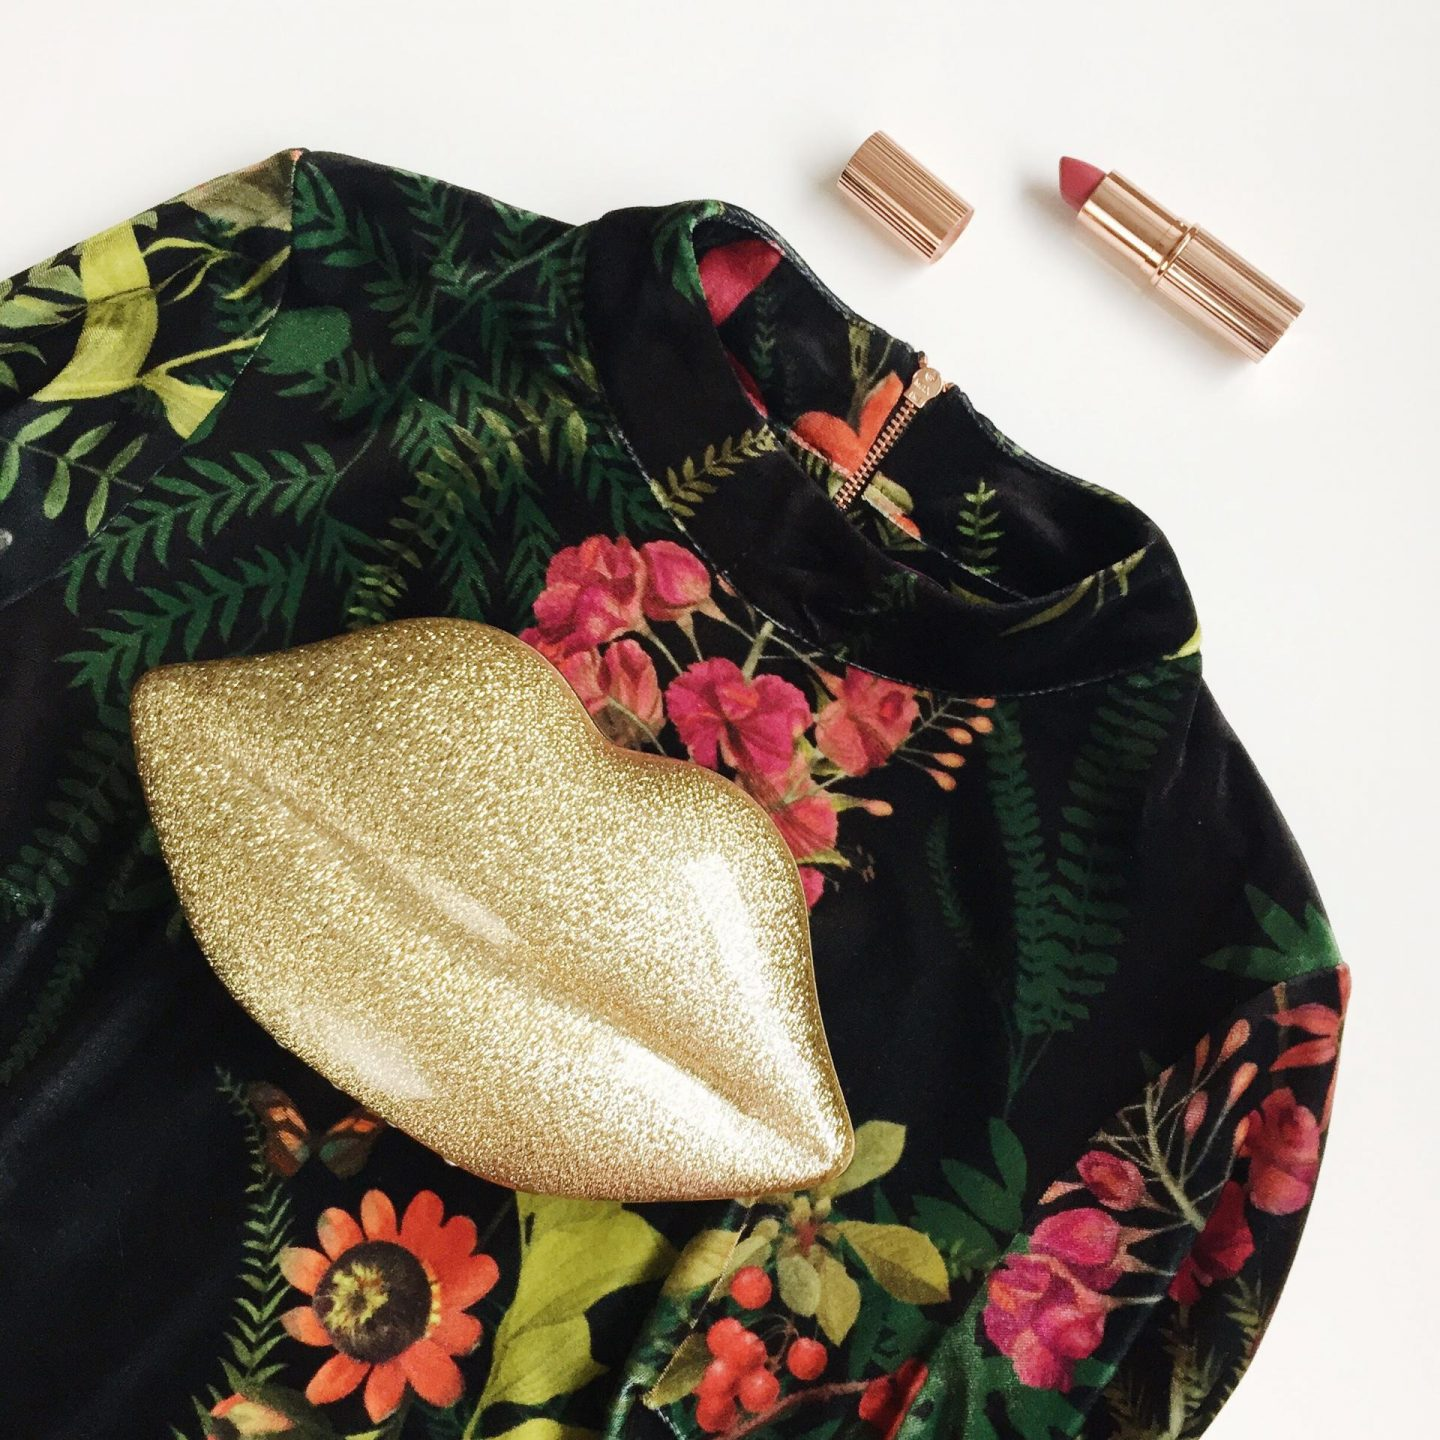 Trend: Velvet and Florals